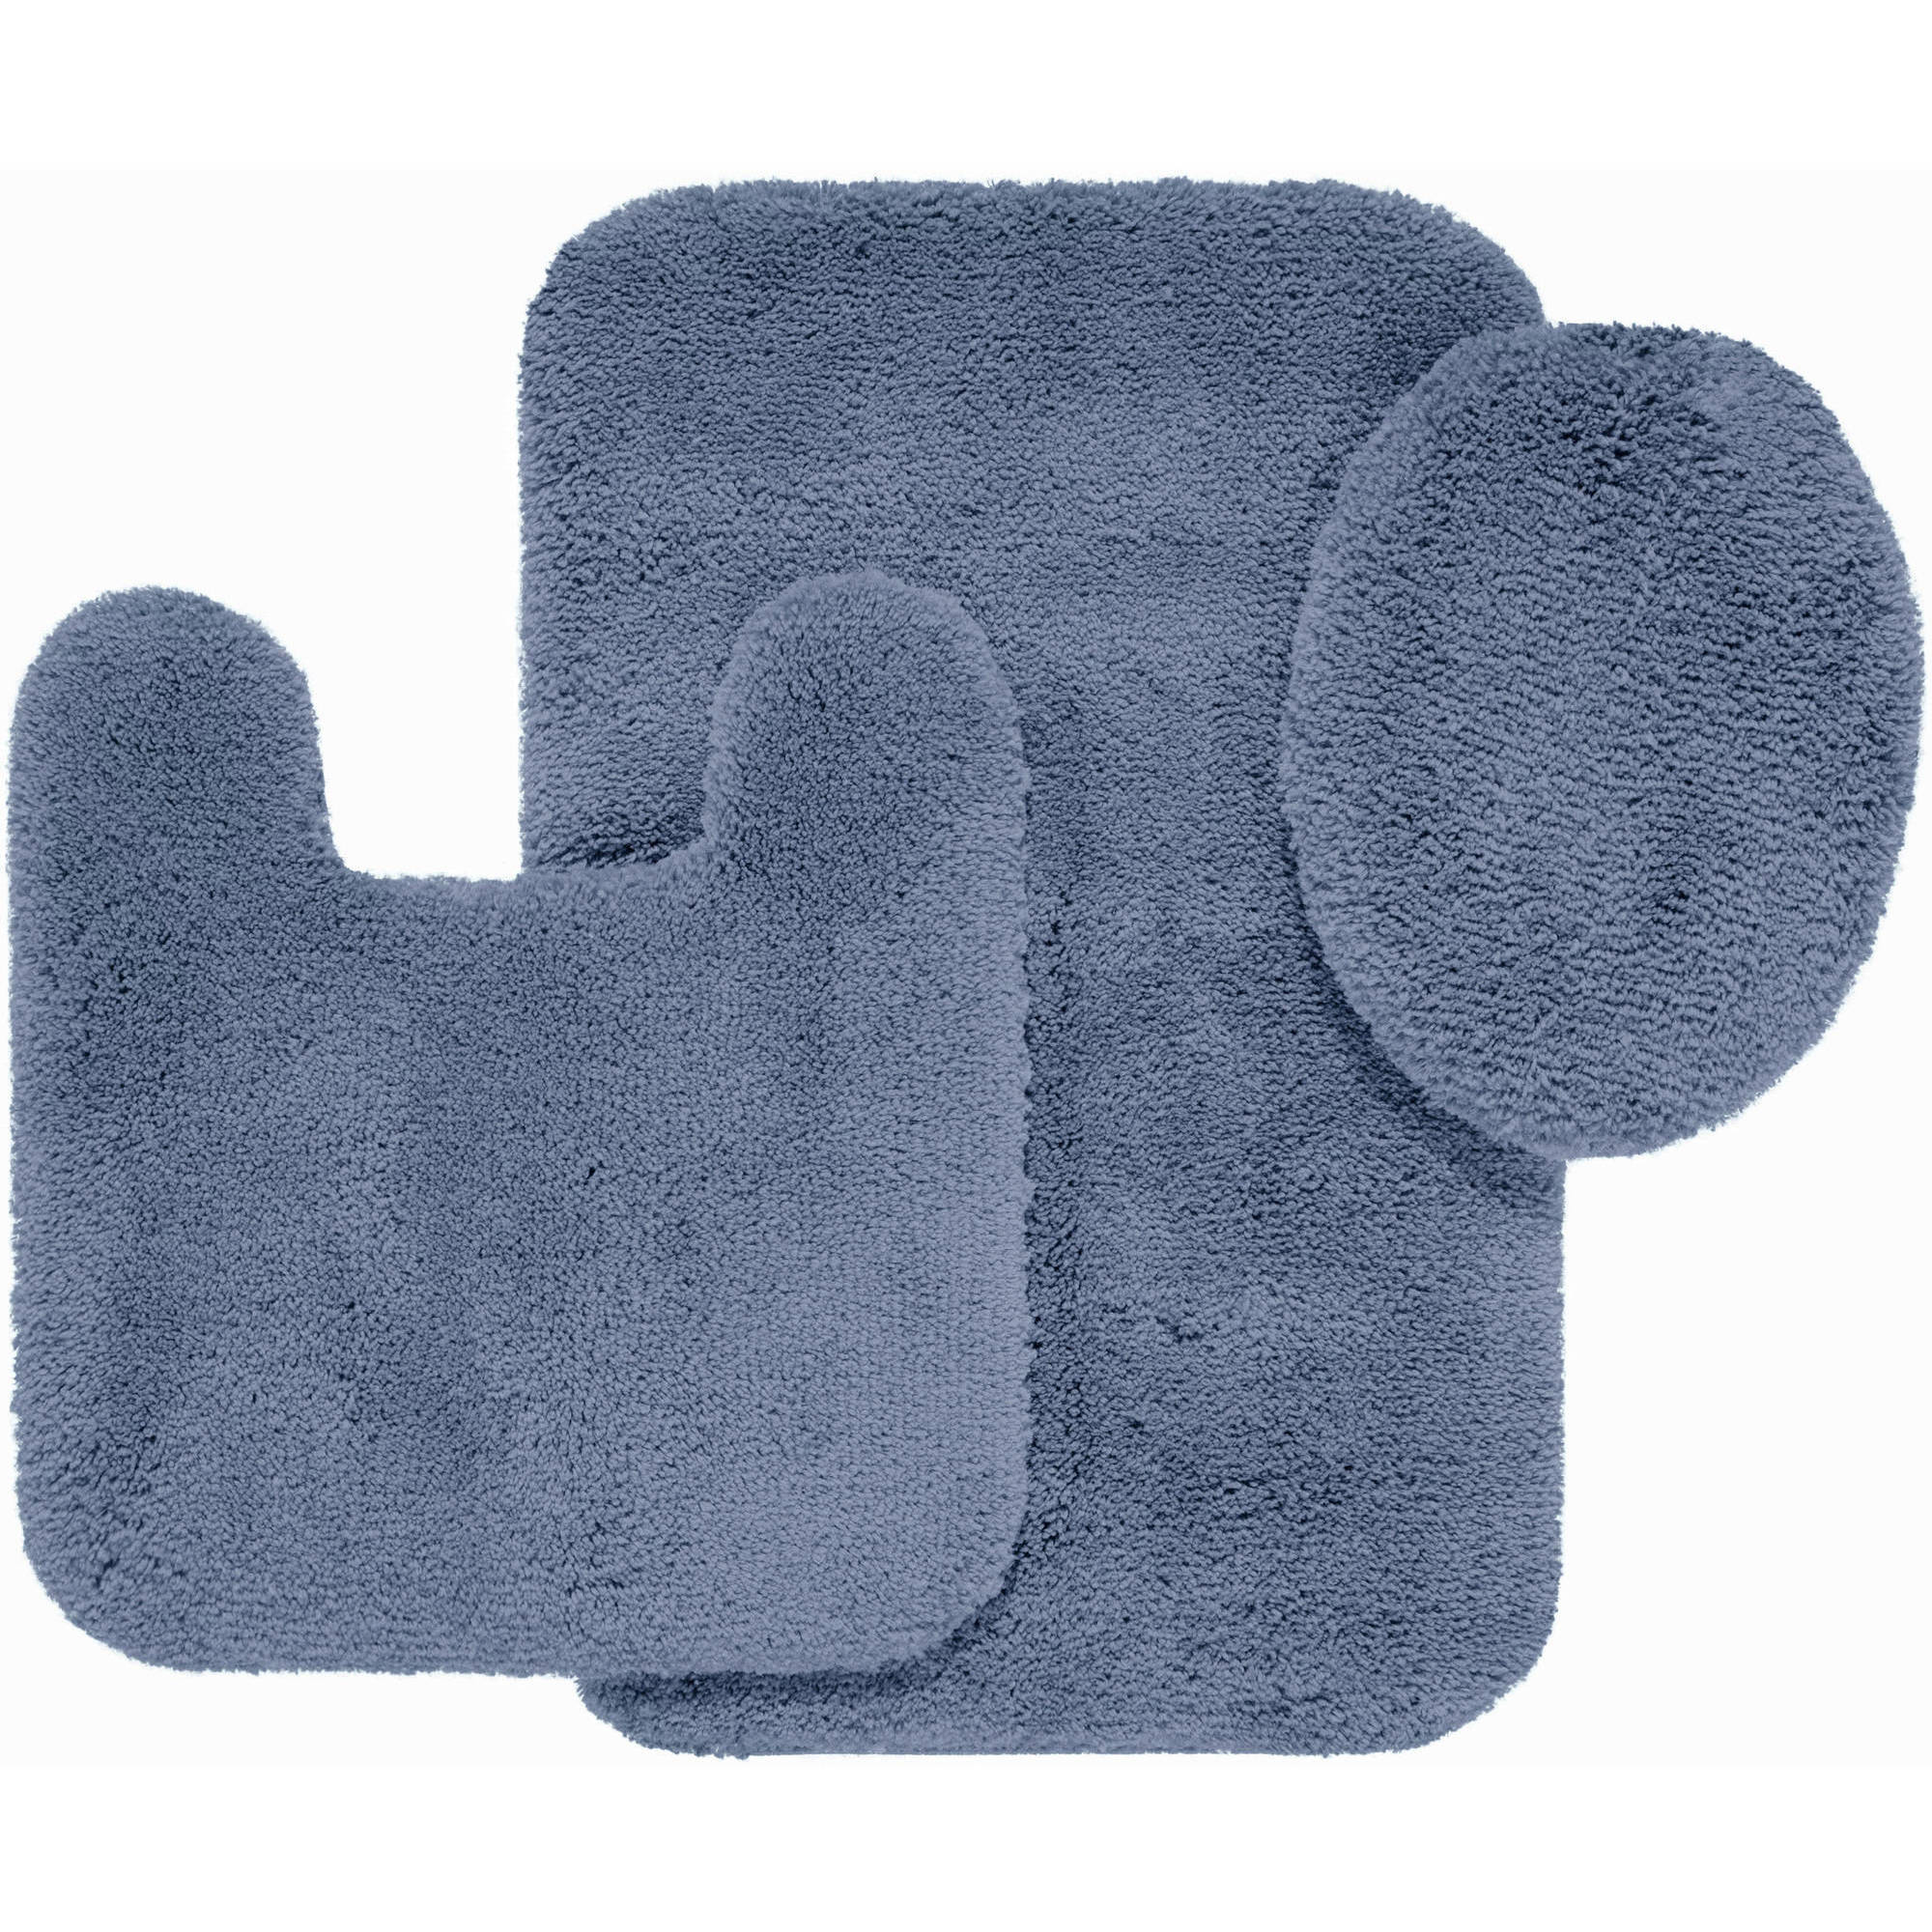 Made Here Bath Rug 3-Piece Set